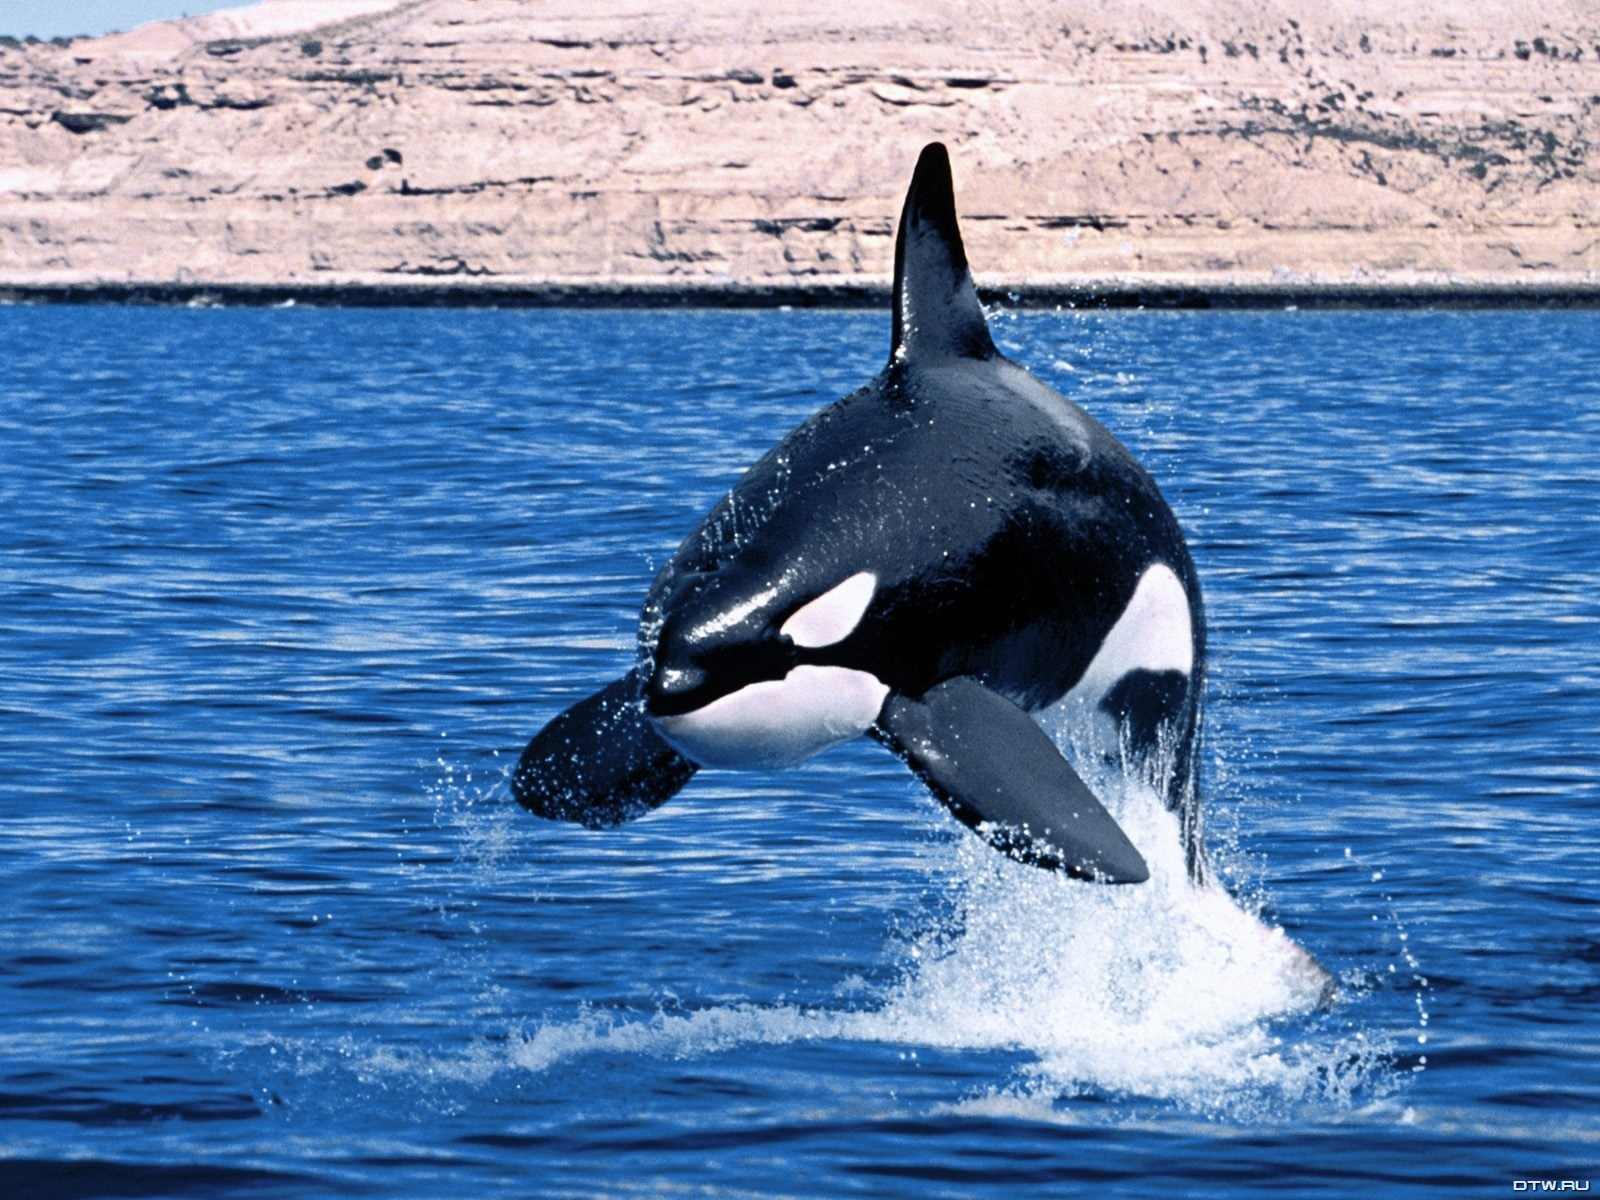 Killer Whales Wallpaper Images amp Pictures   Becuo 1600x1200